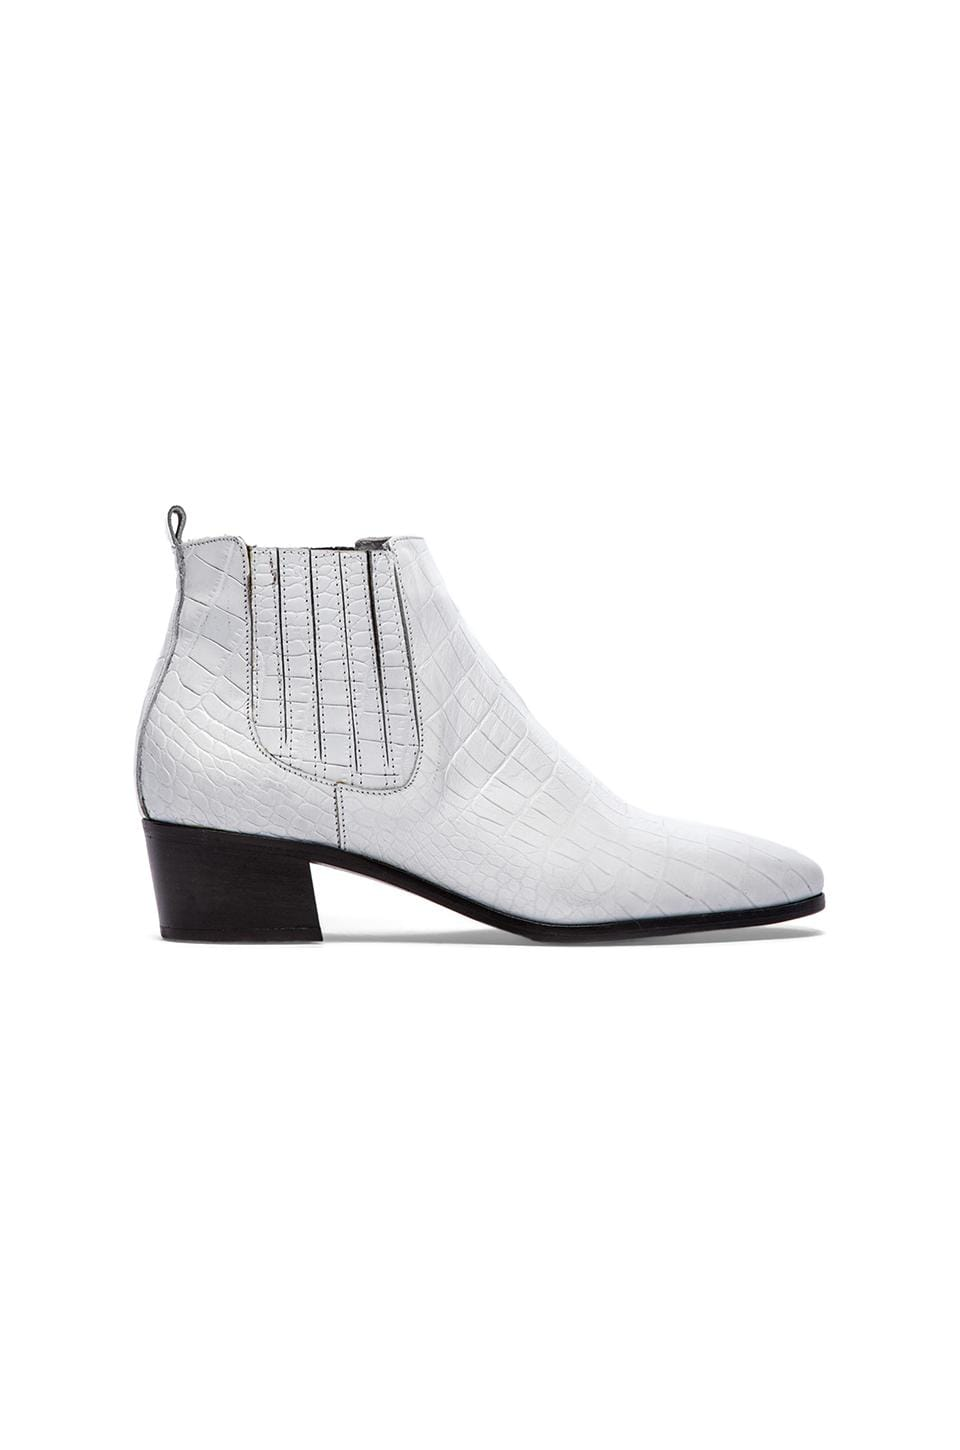 MODERN VICE COLLECTION Handler Boot in White Croc